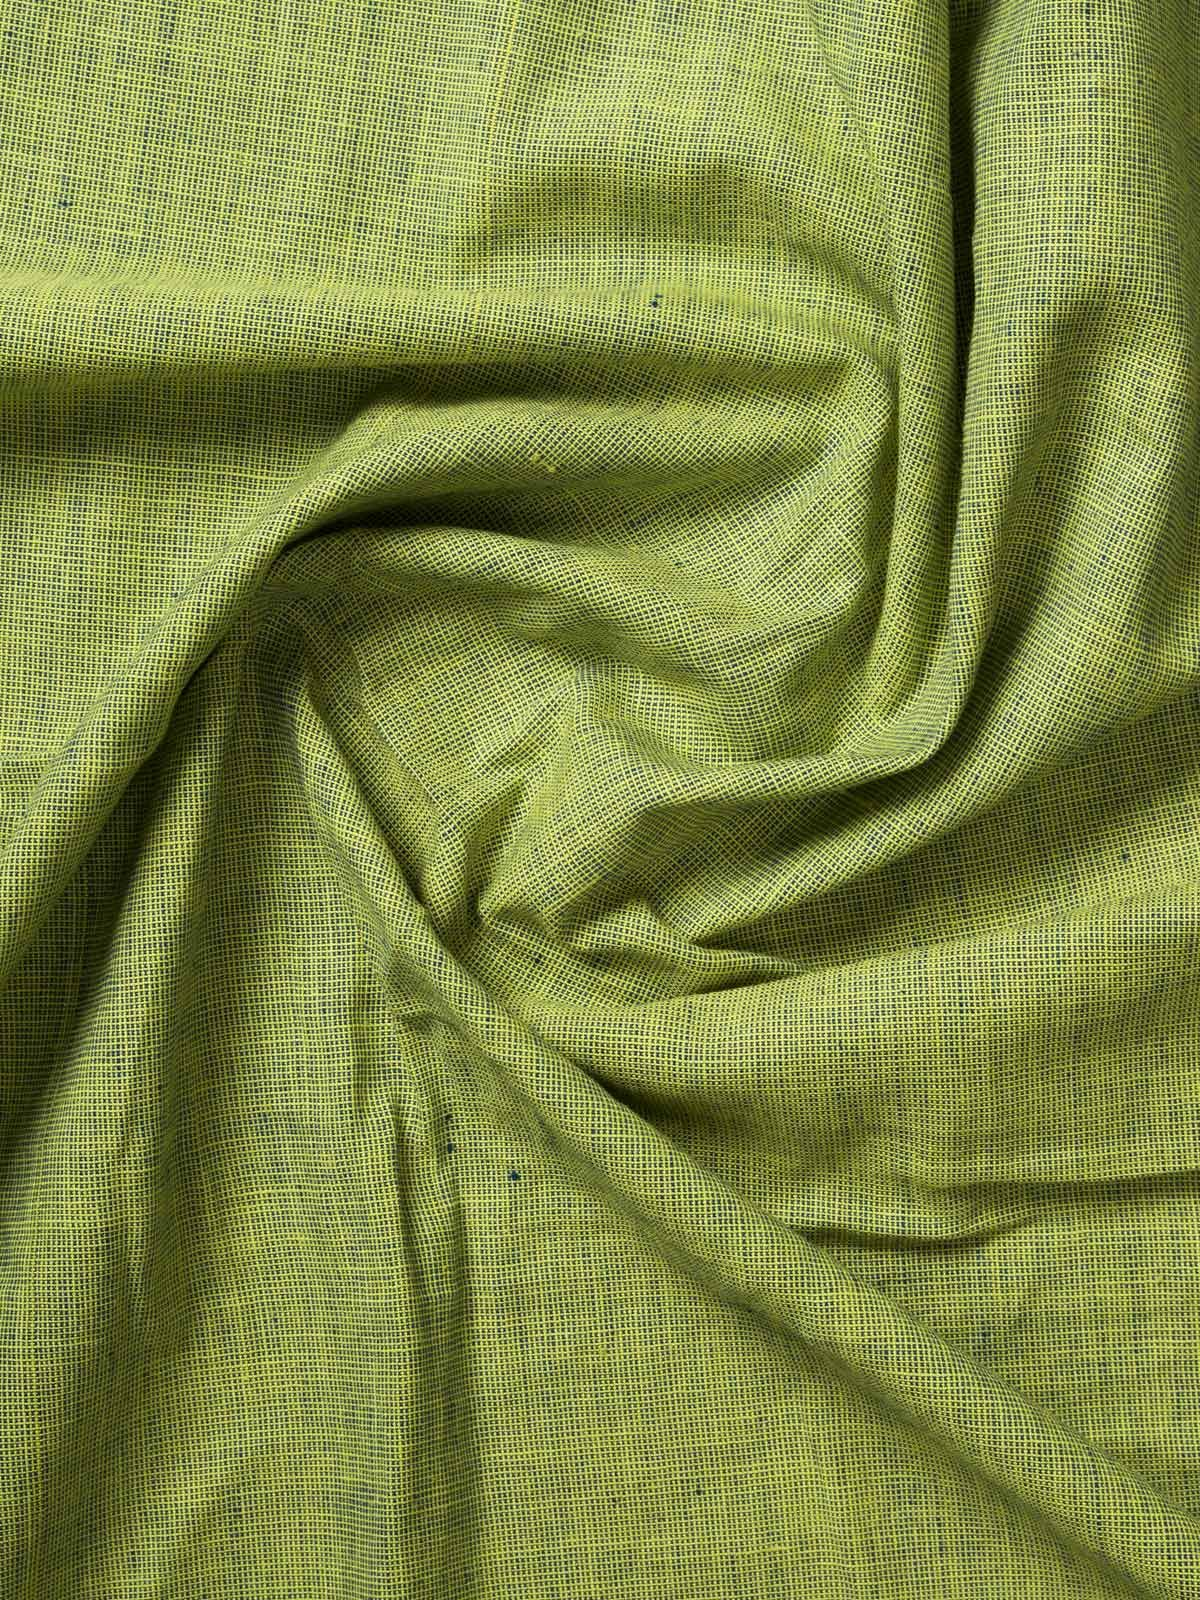 Asparagus Color Handloom Cotton Fabric